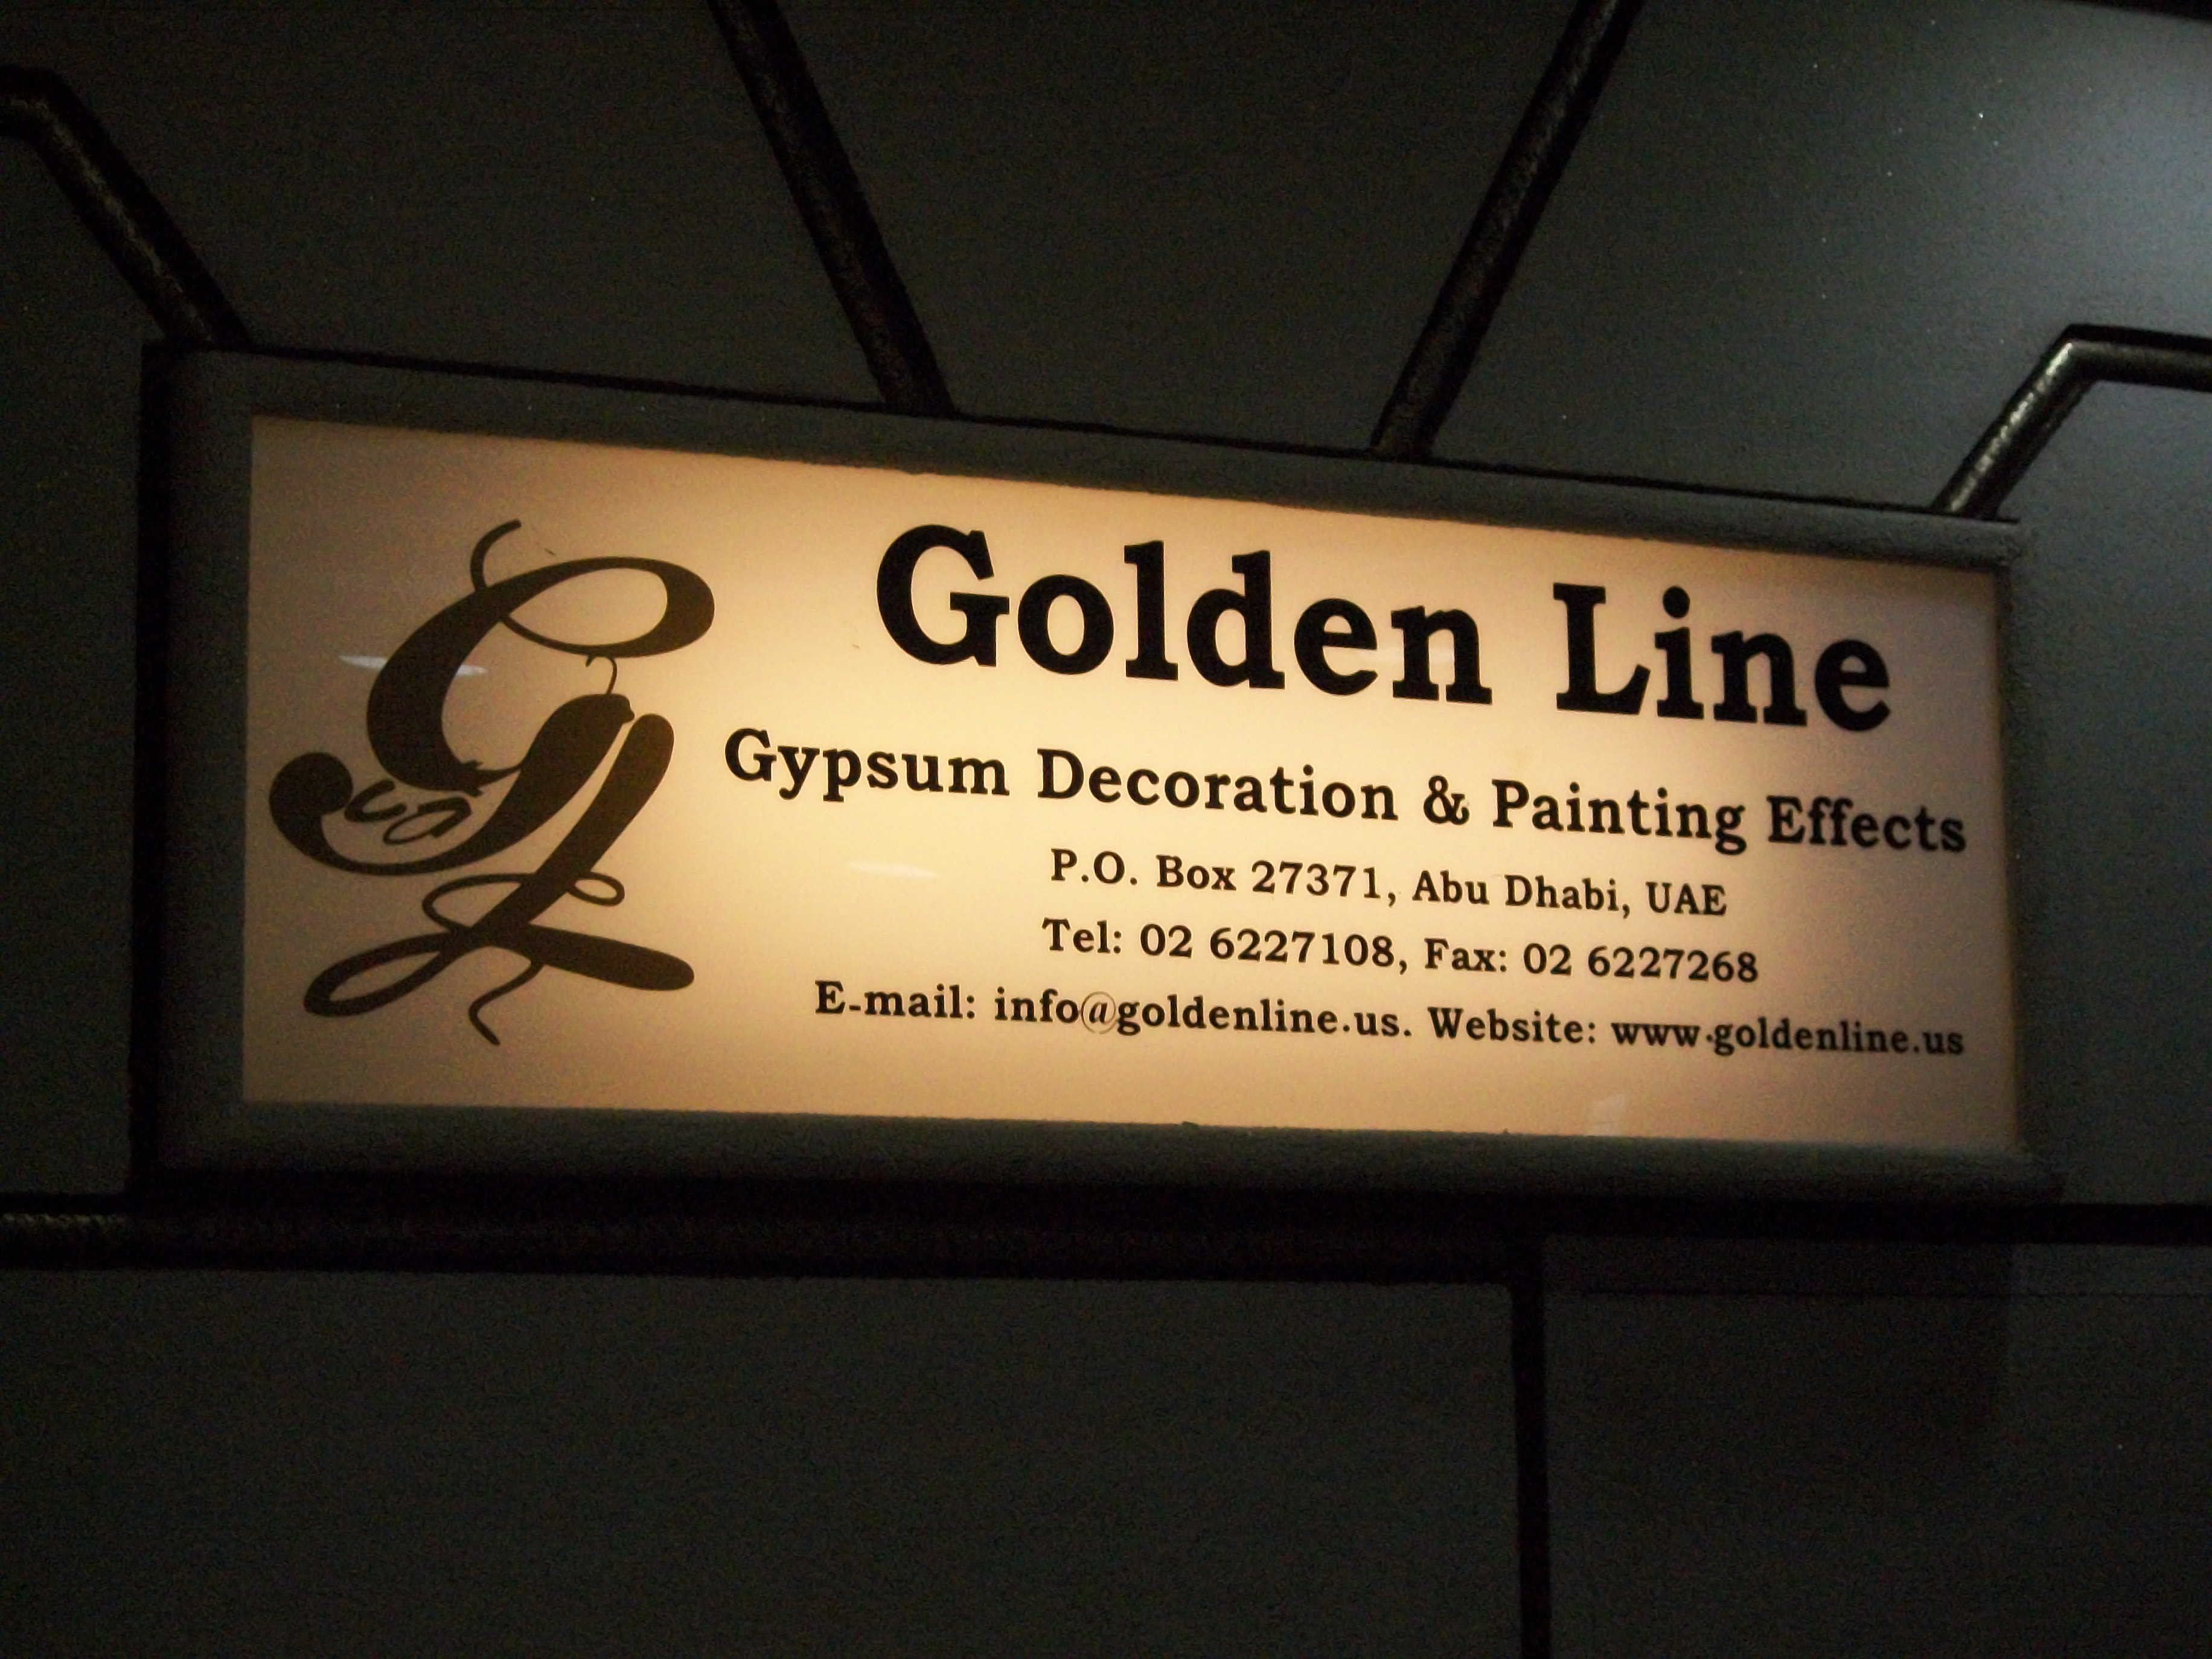 Golden Line Gypsum Works And Painting Effects Is Currently Accepting New  Clients. U003eu003eu003eu003e